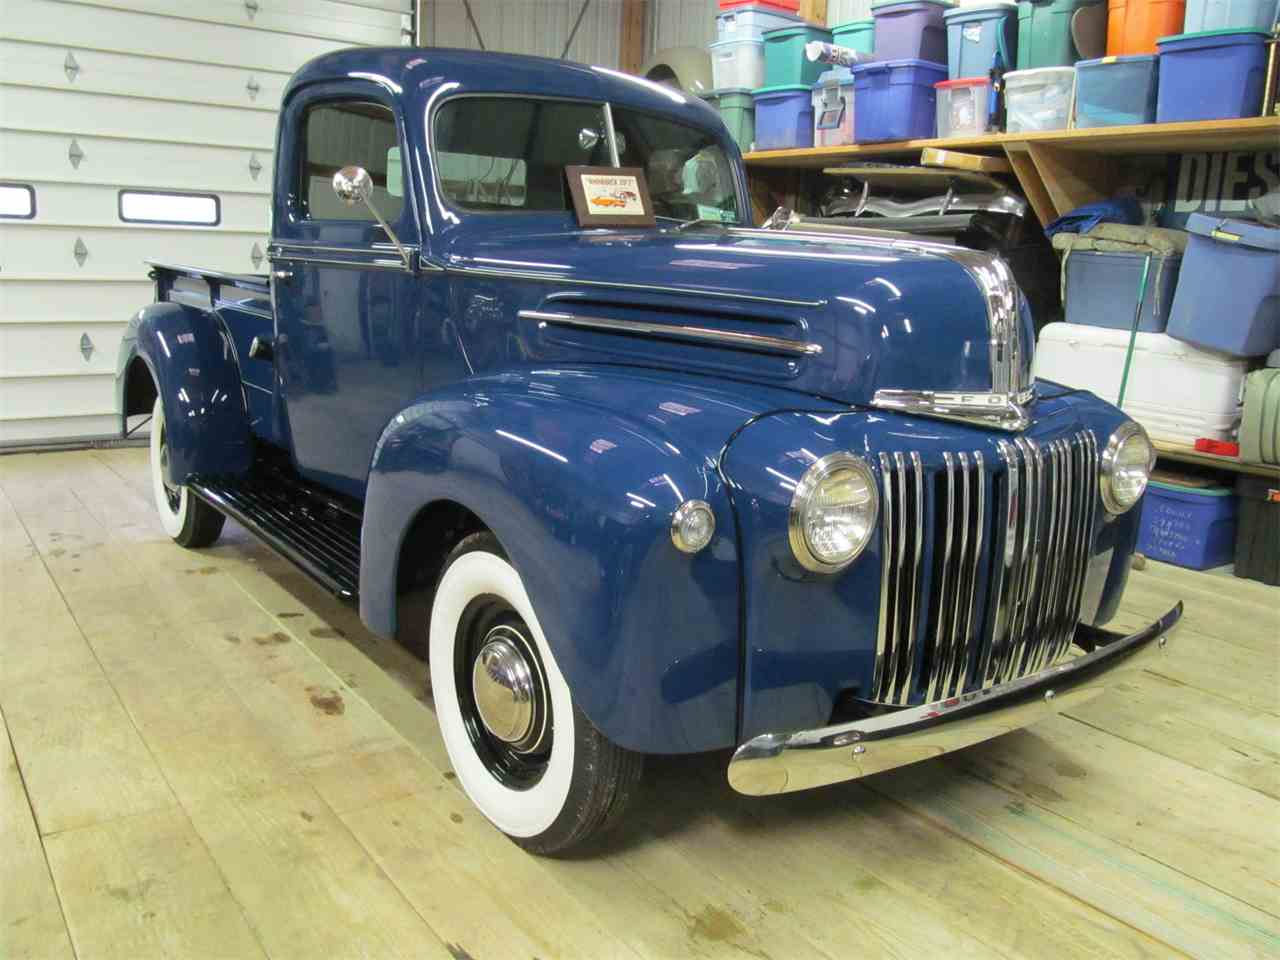 Orlando Ford Dealers >> 1946 Ford Pickup for Sale | ClassicCars.com | CC-988989